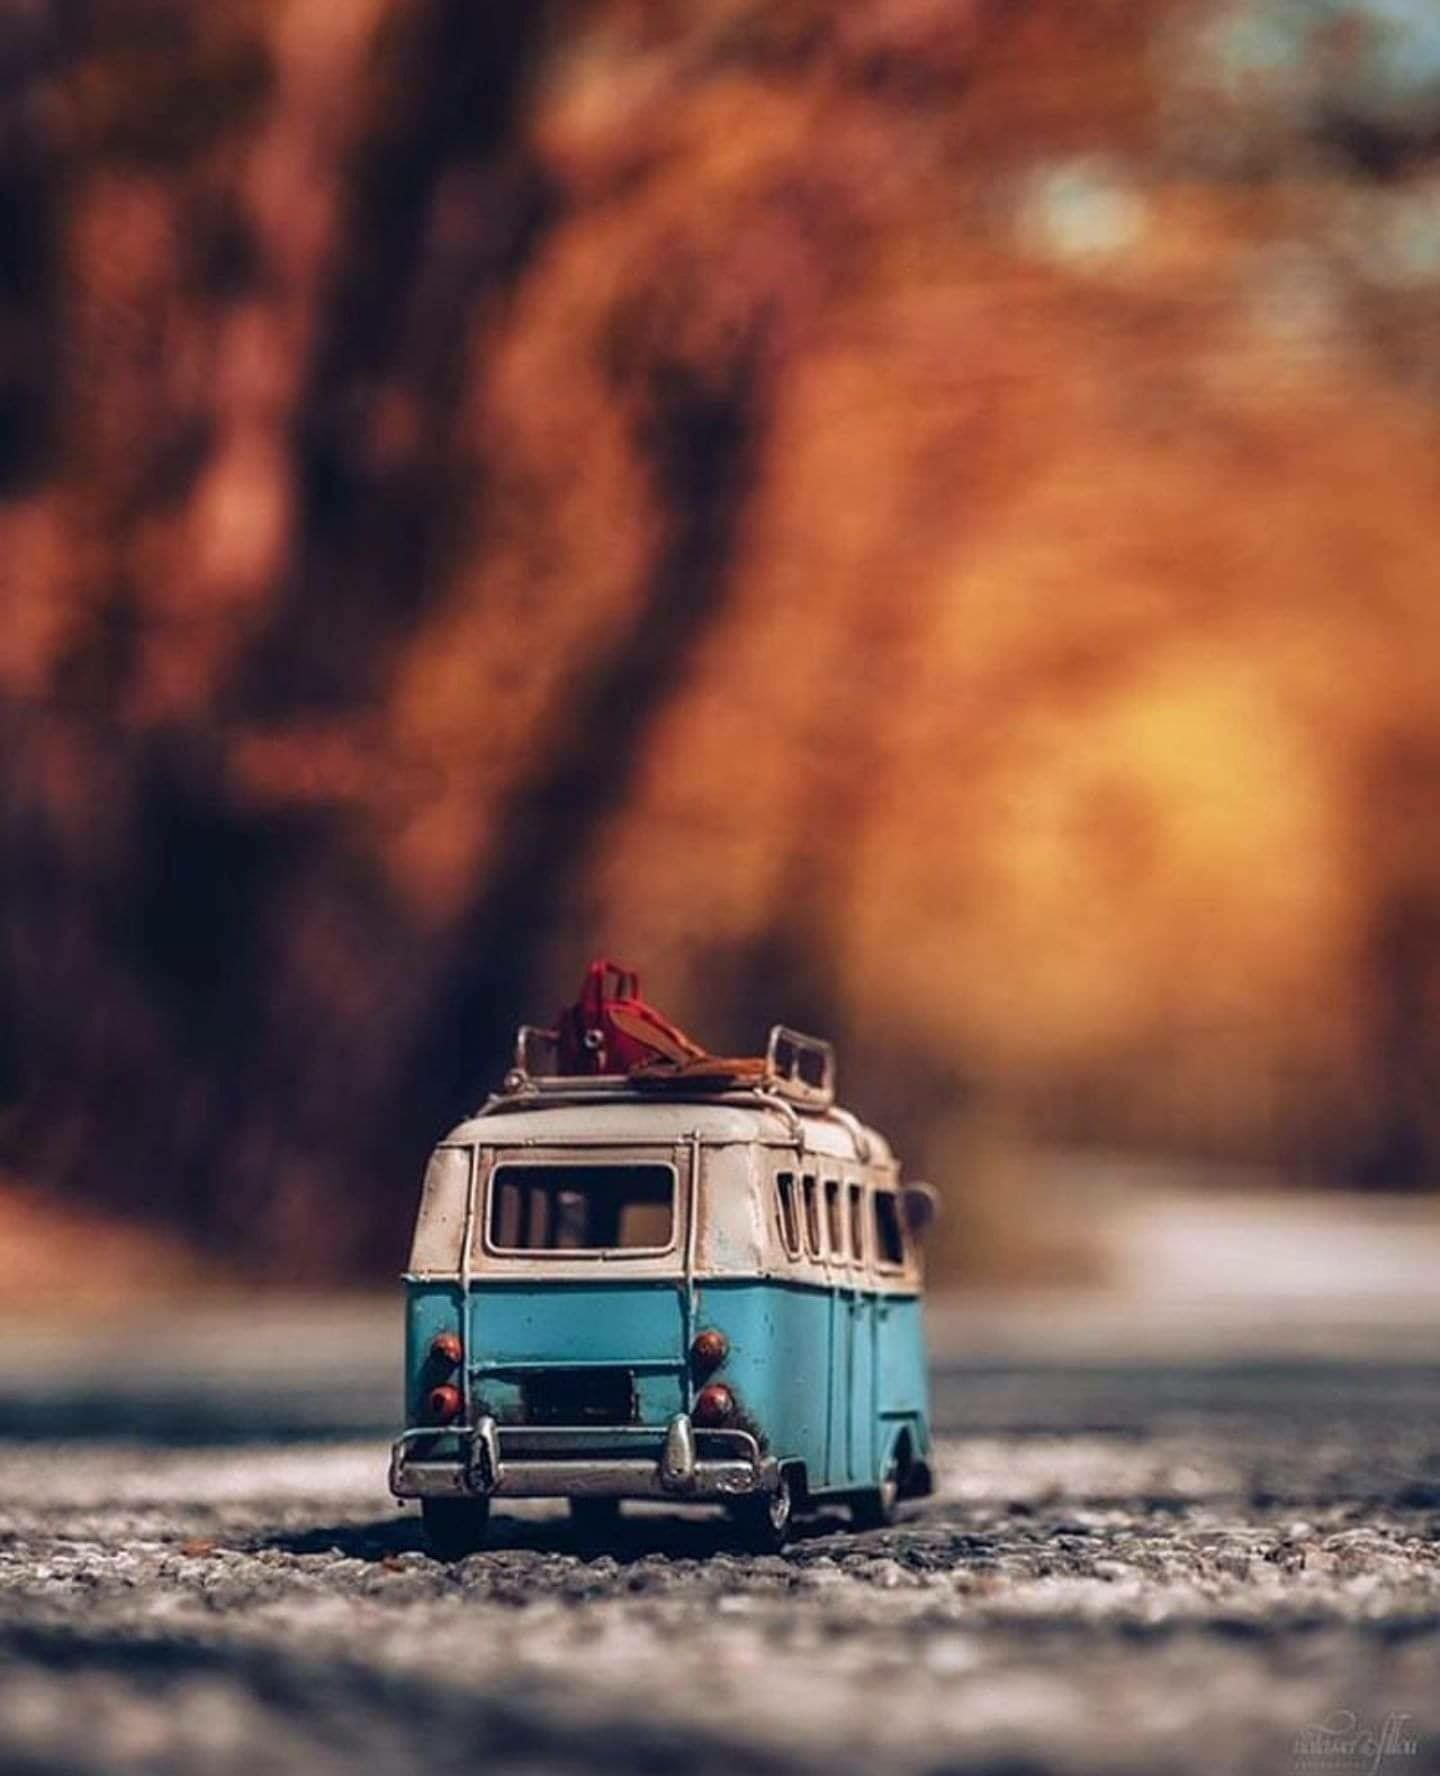 Pin By Bidhij On Photography In 2019 Miniature Photography